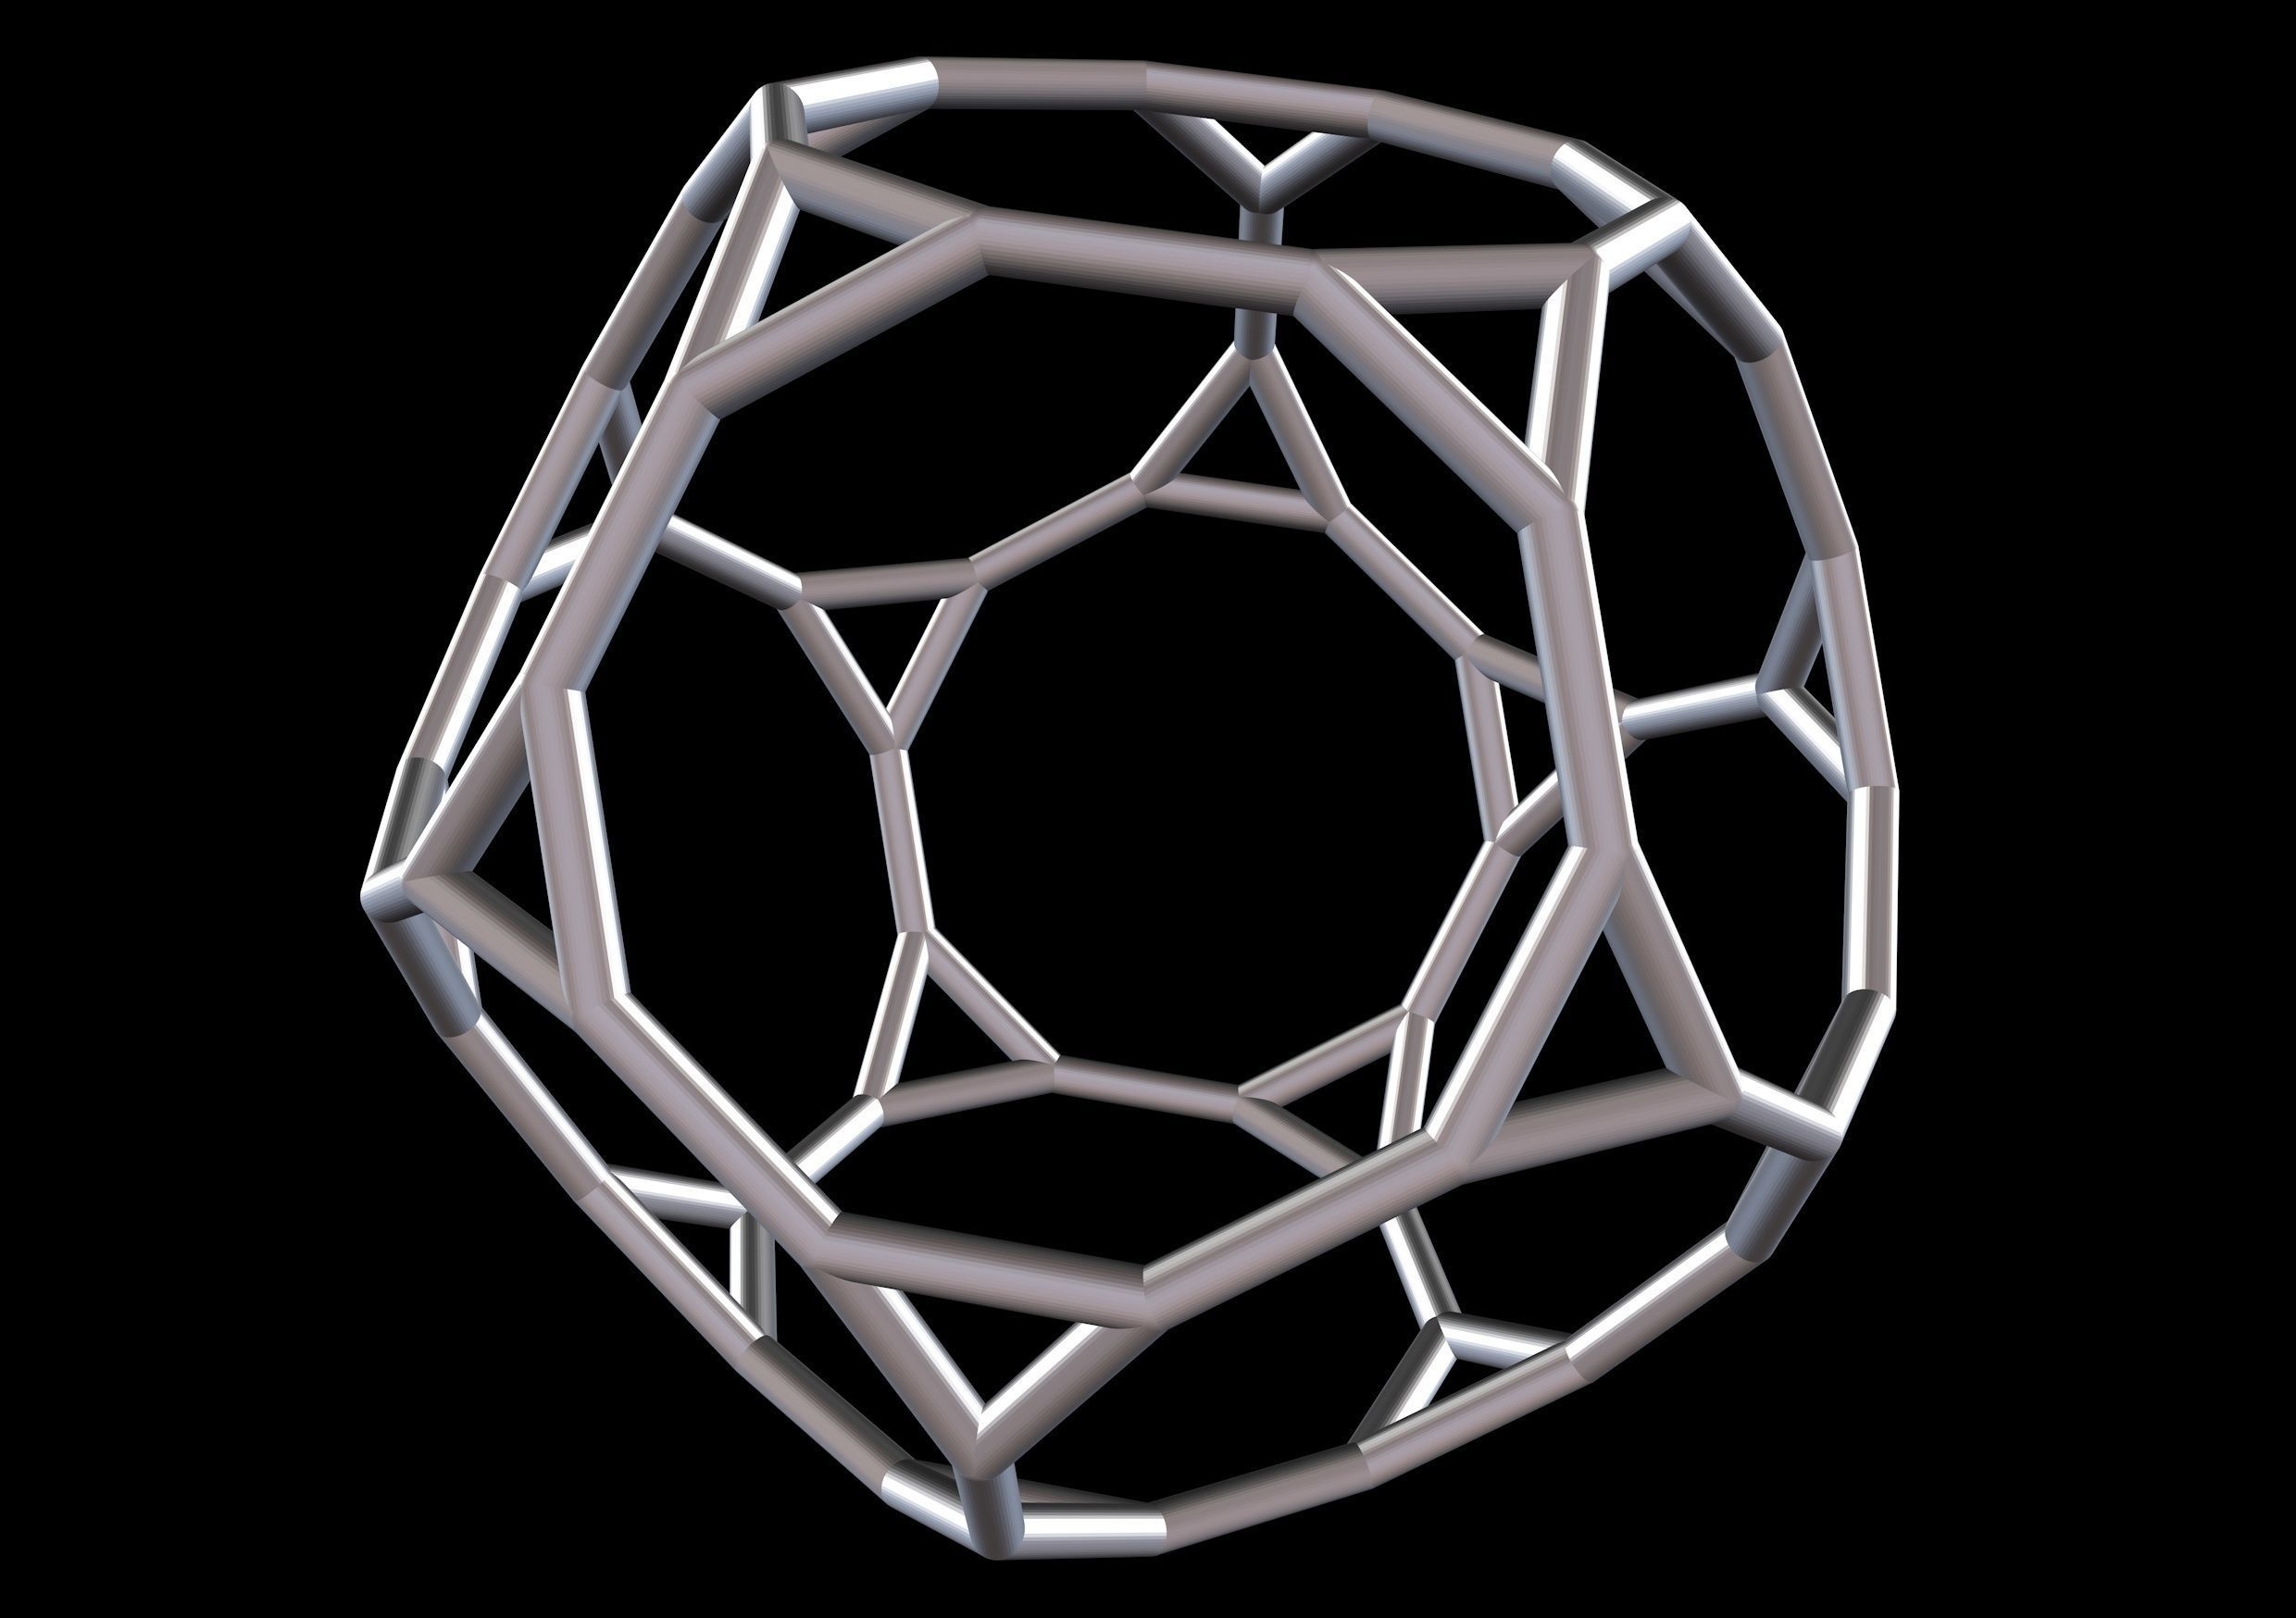 043 Mathart-Archimedean Solids-Truncated Dodecahedron 01-10cm